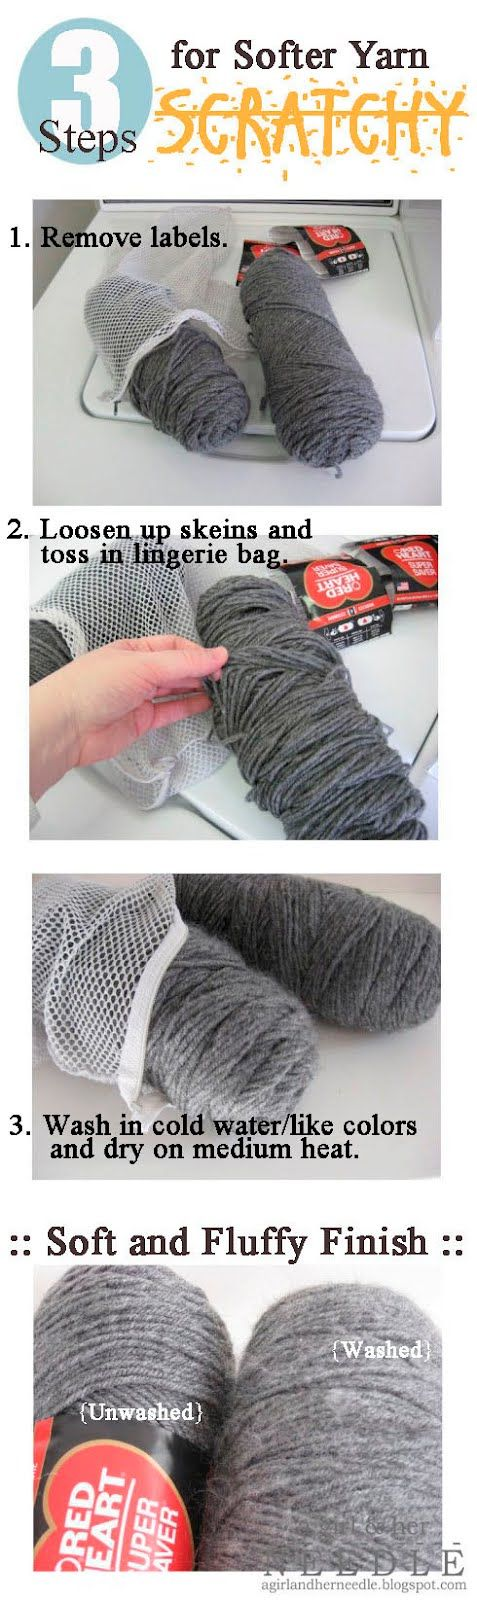 3 Steps for softer yarn.  Simply wash it in a lingerie bag!Good Ideas, Red Heart Yarn, Scratchy Yarns, Softener Scratchy, Cheap Acrylics, Acrylics Yarns, Lingerie Bags, Softer Yarns, Crochet Knits